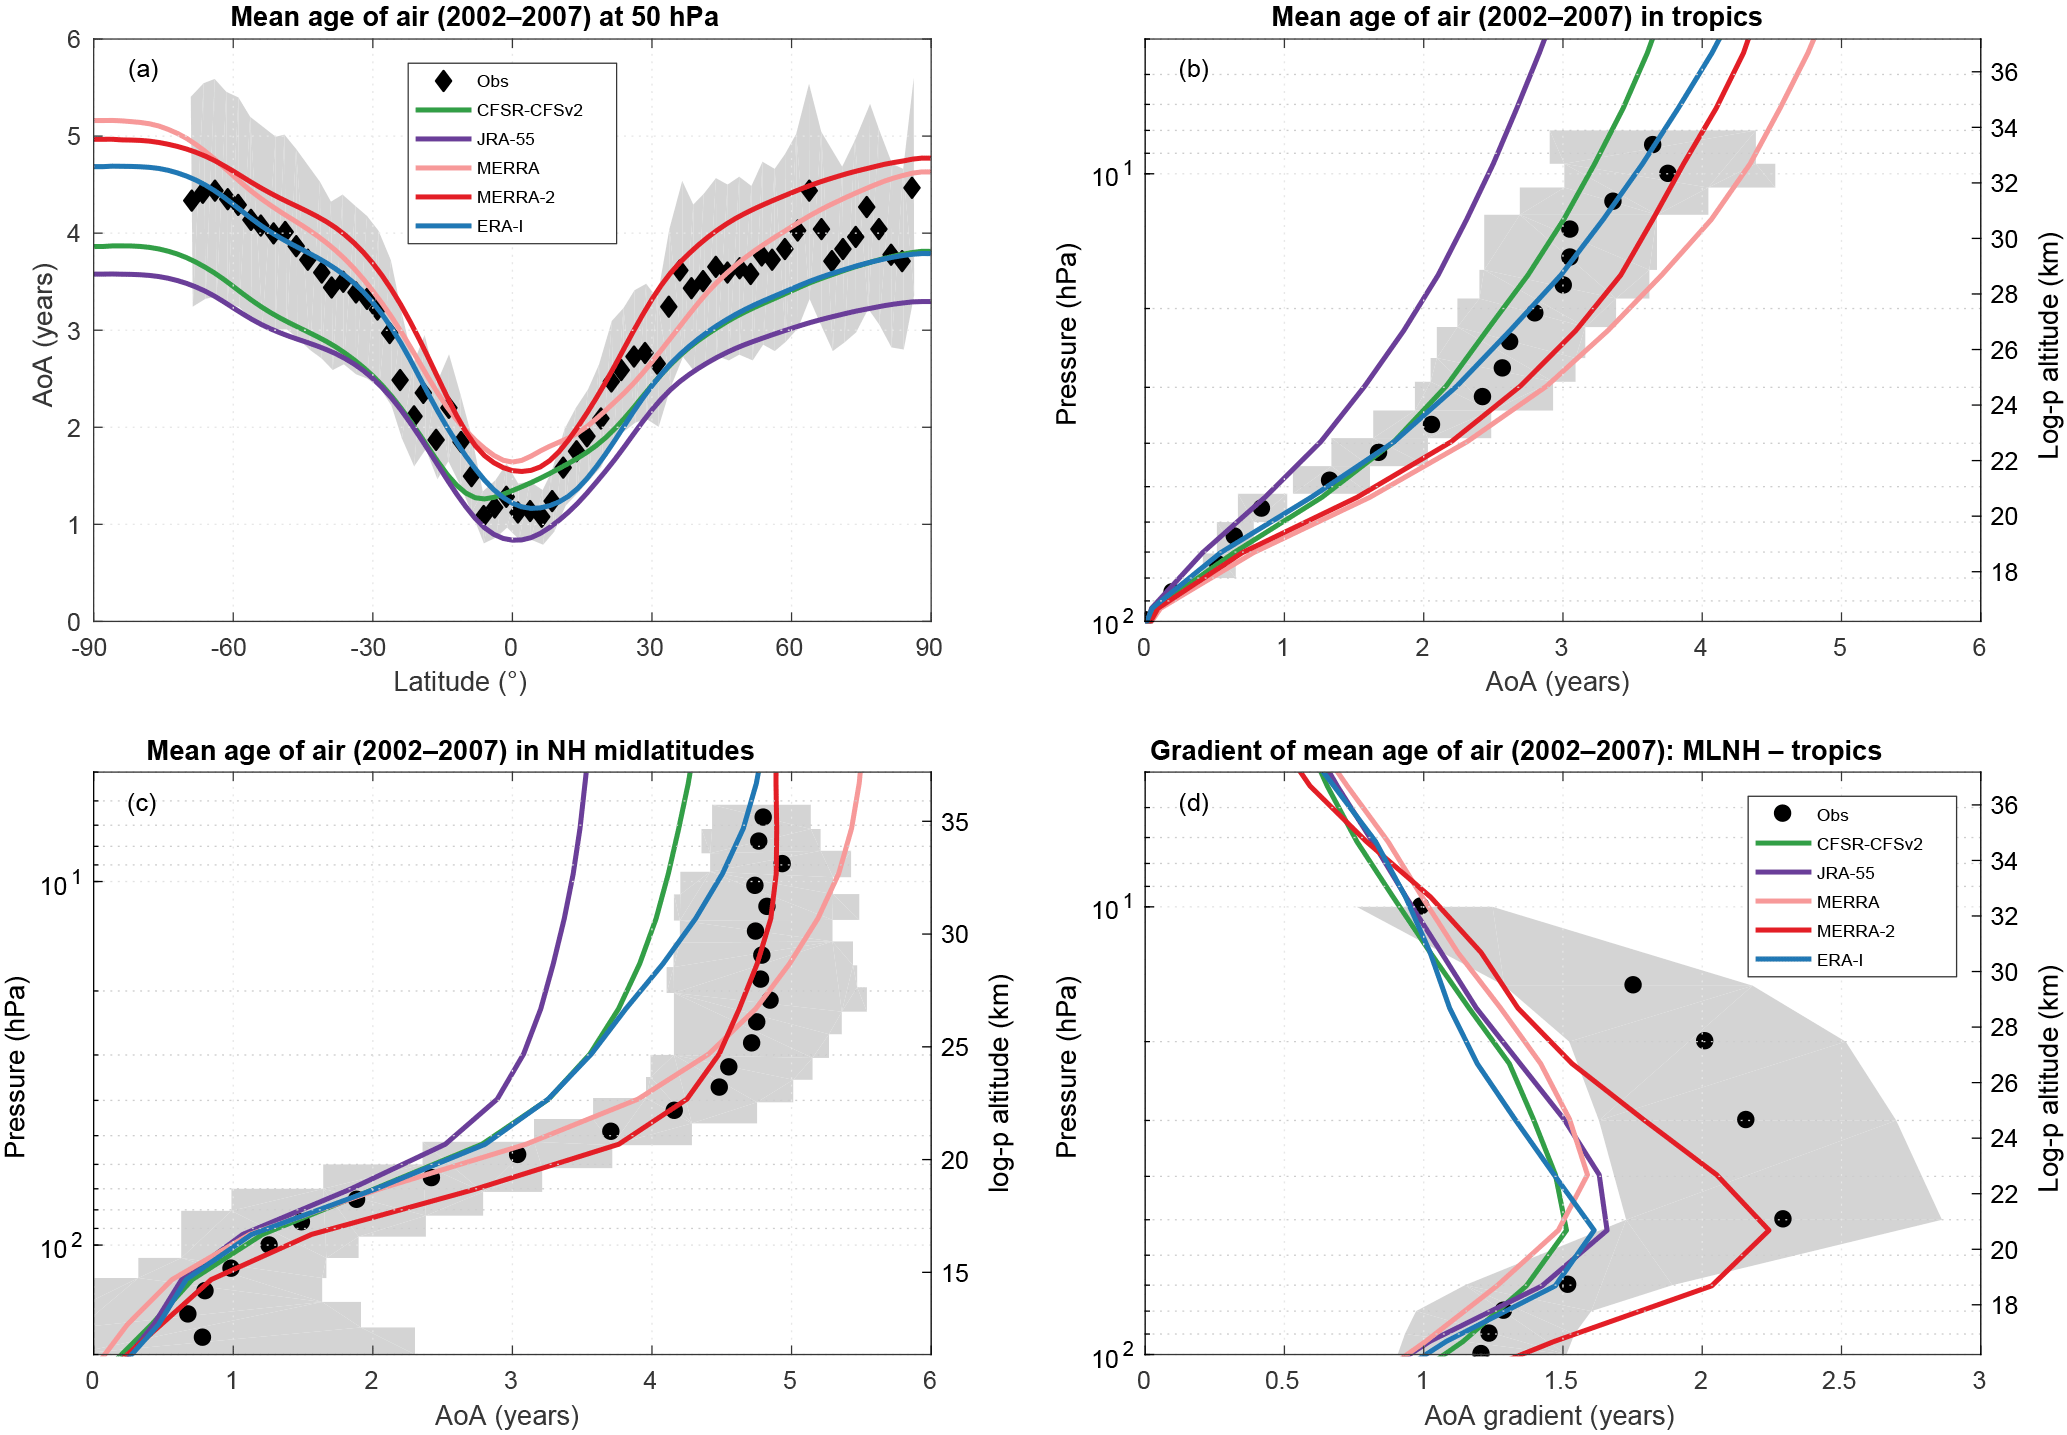 ACP - Comparison of mean age of air in five reanalyses using